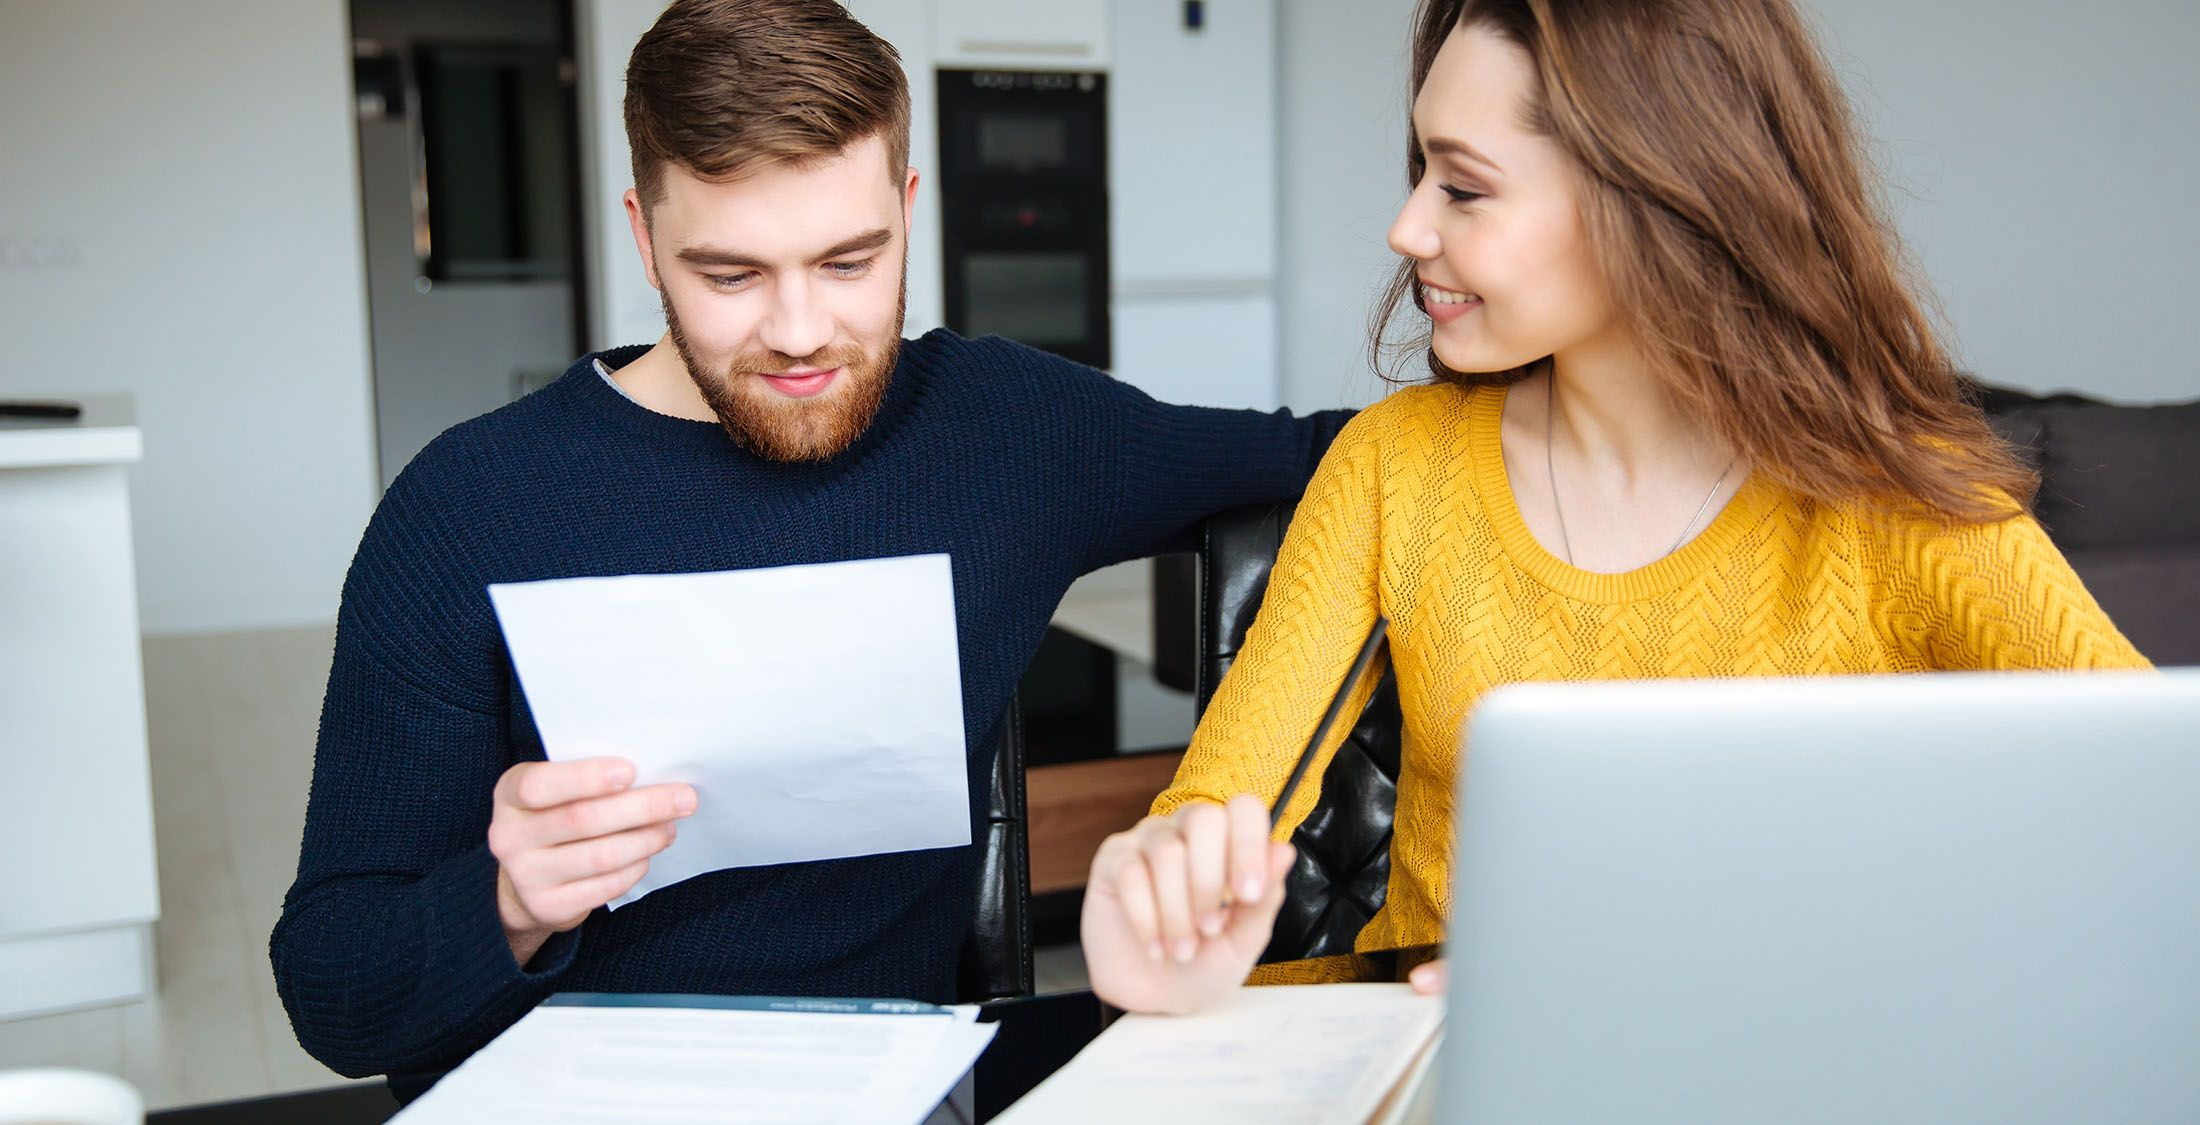 man looking over bills with woman